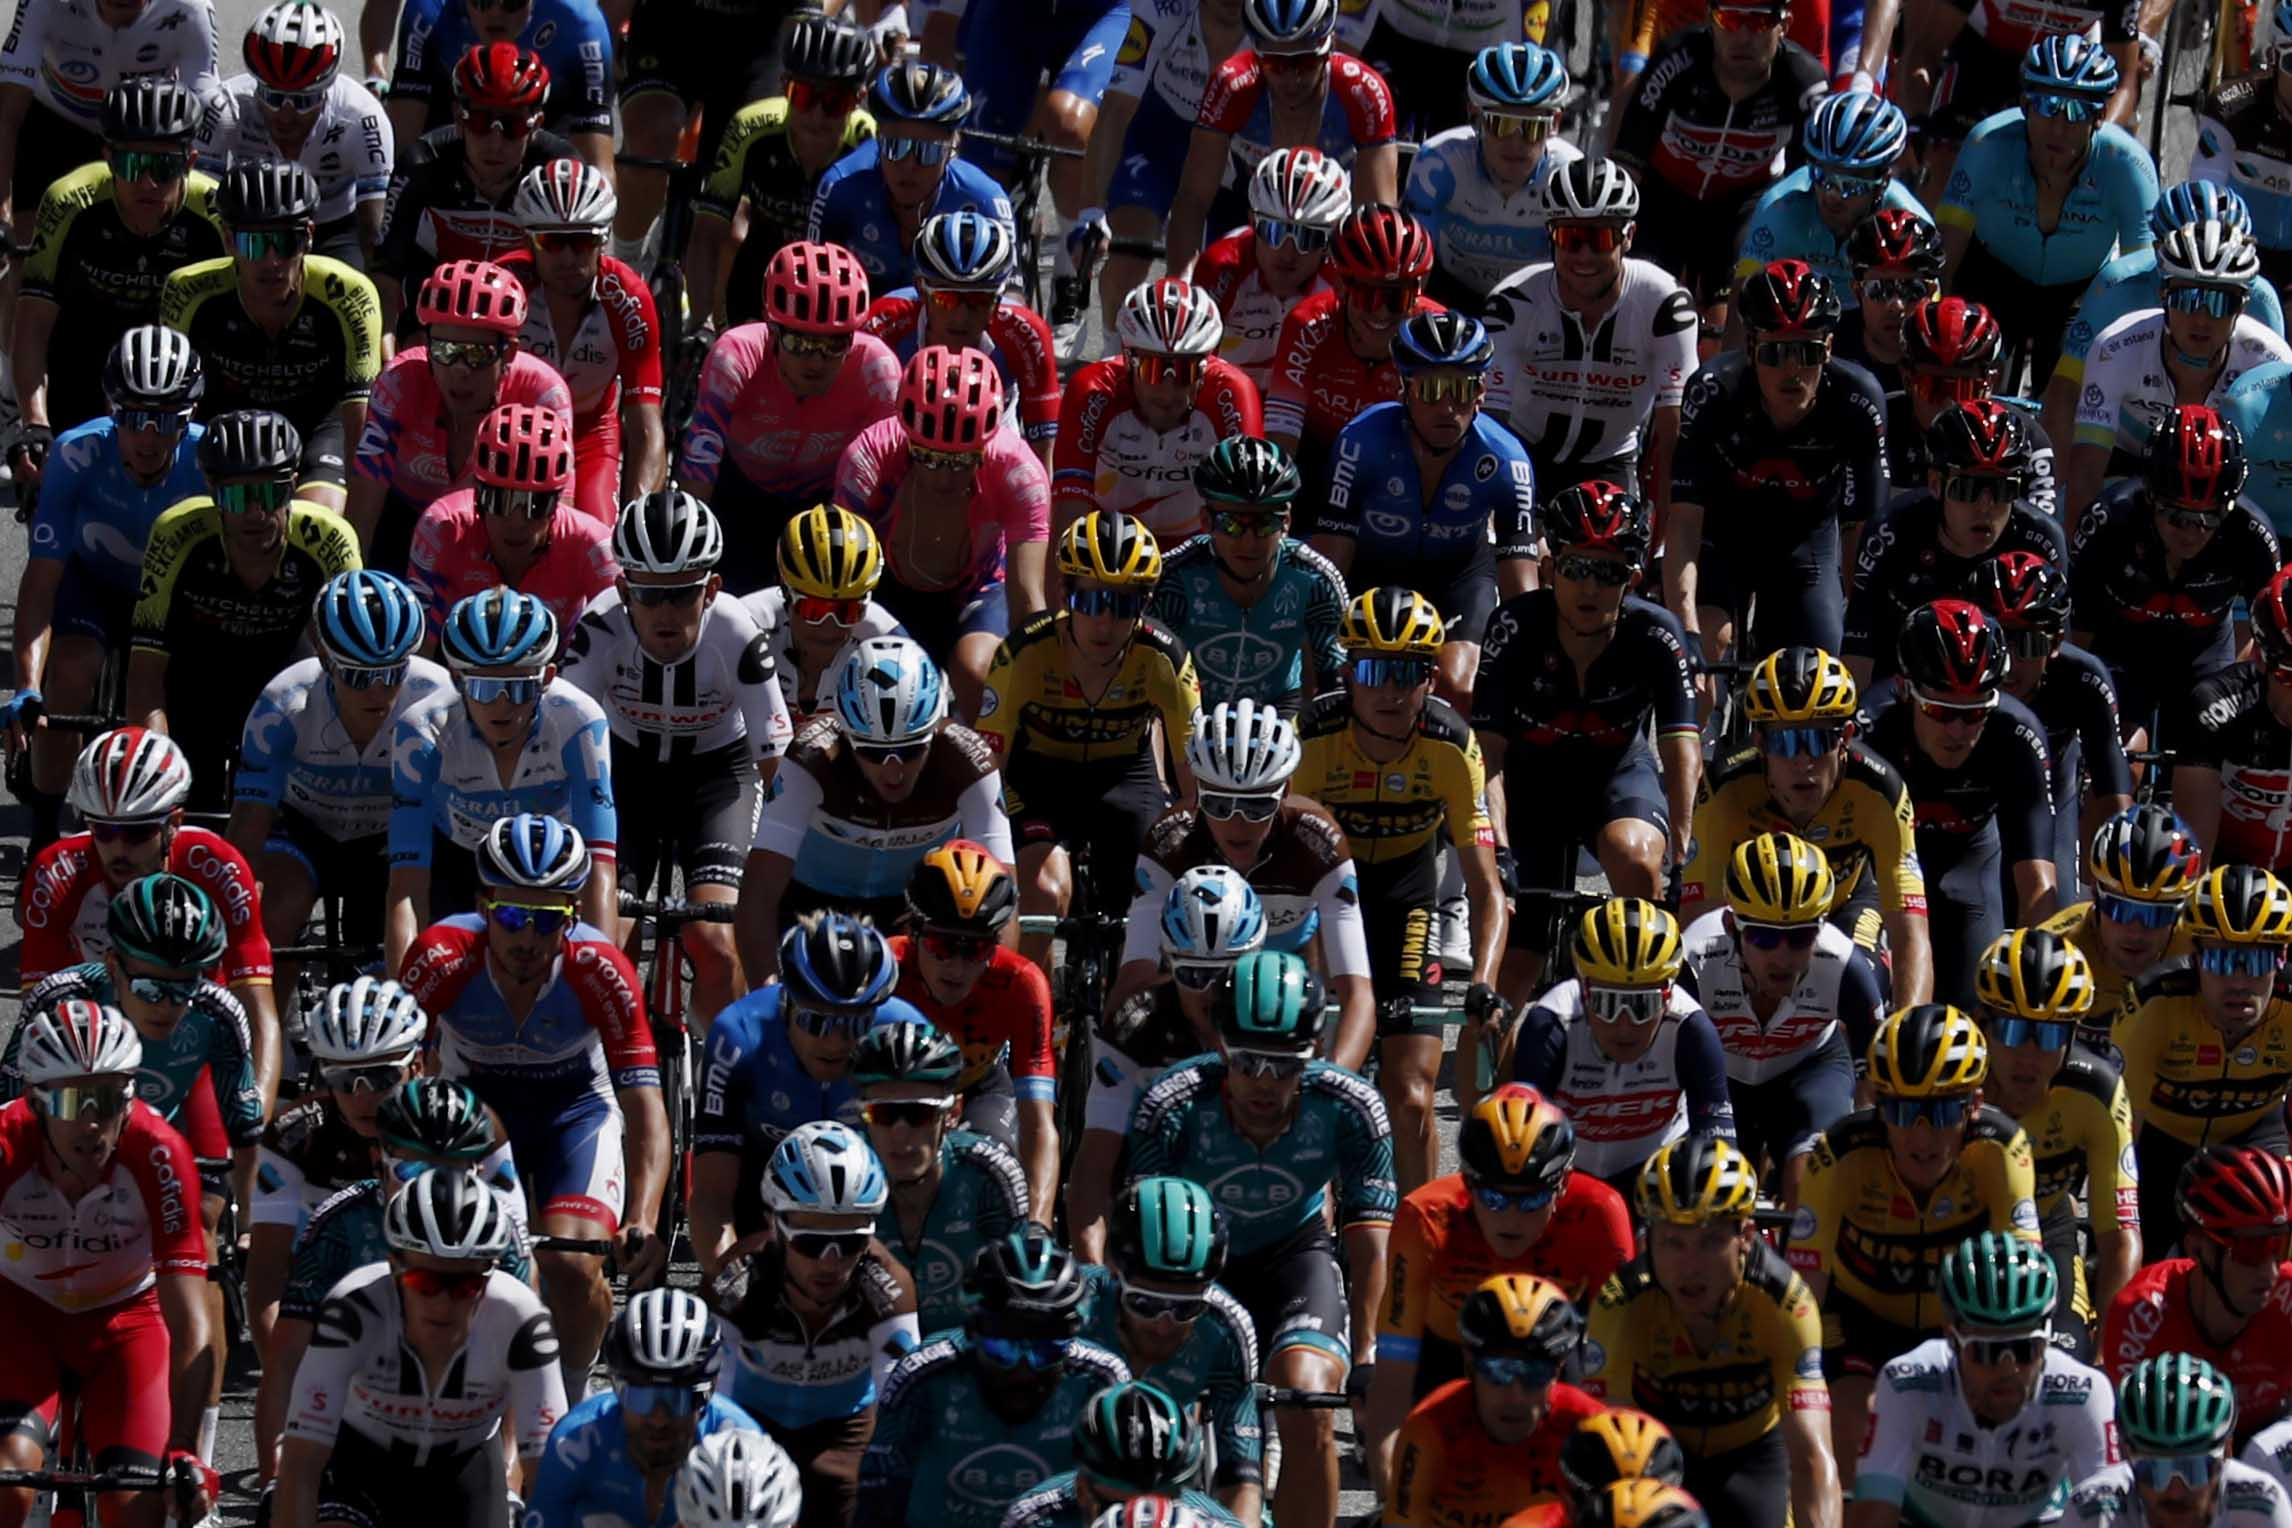 The pack rides during the second stage of the Tour de France cycling race in Nice, southern France, on Sunday, August 30.